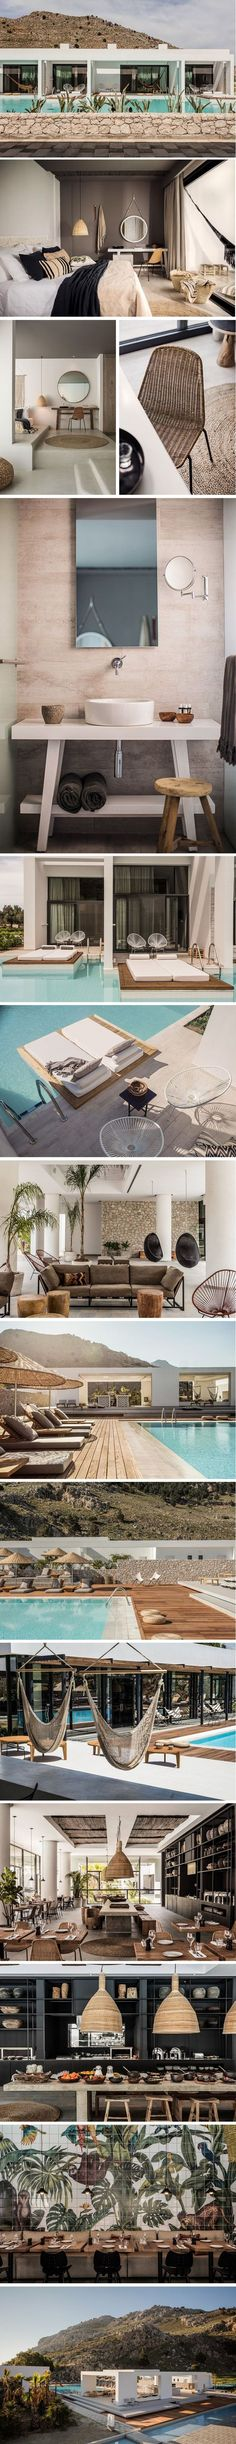 ERRRMYGAWD. Have you all checked out this beyond beautiful boutique hotel that opened in Rhodes, Greece this past June!? Well if you haven't yet, it's called Casa Cook and it's st…